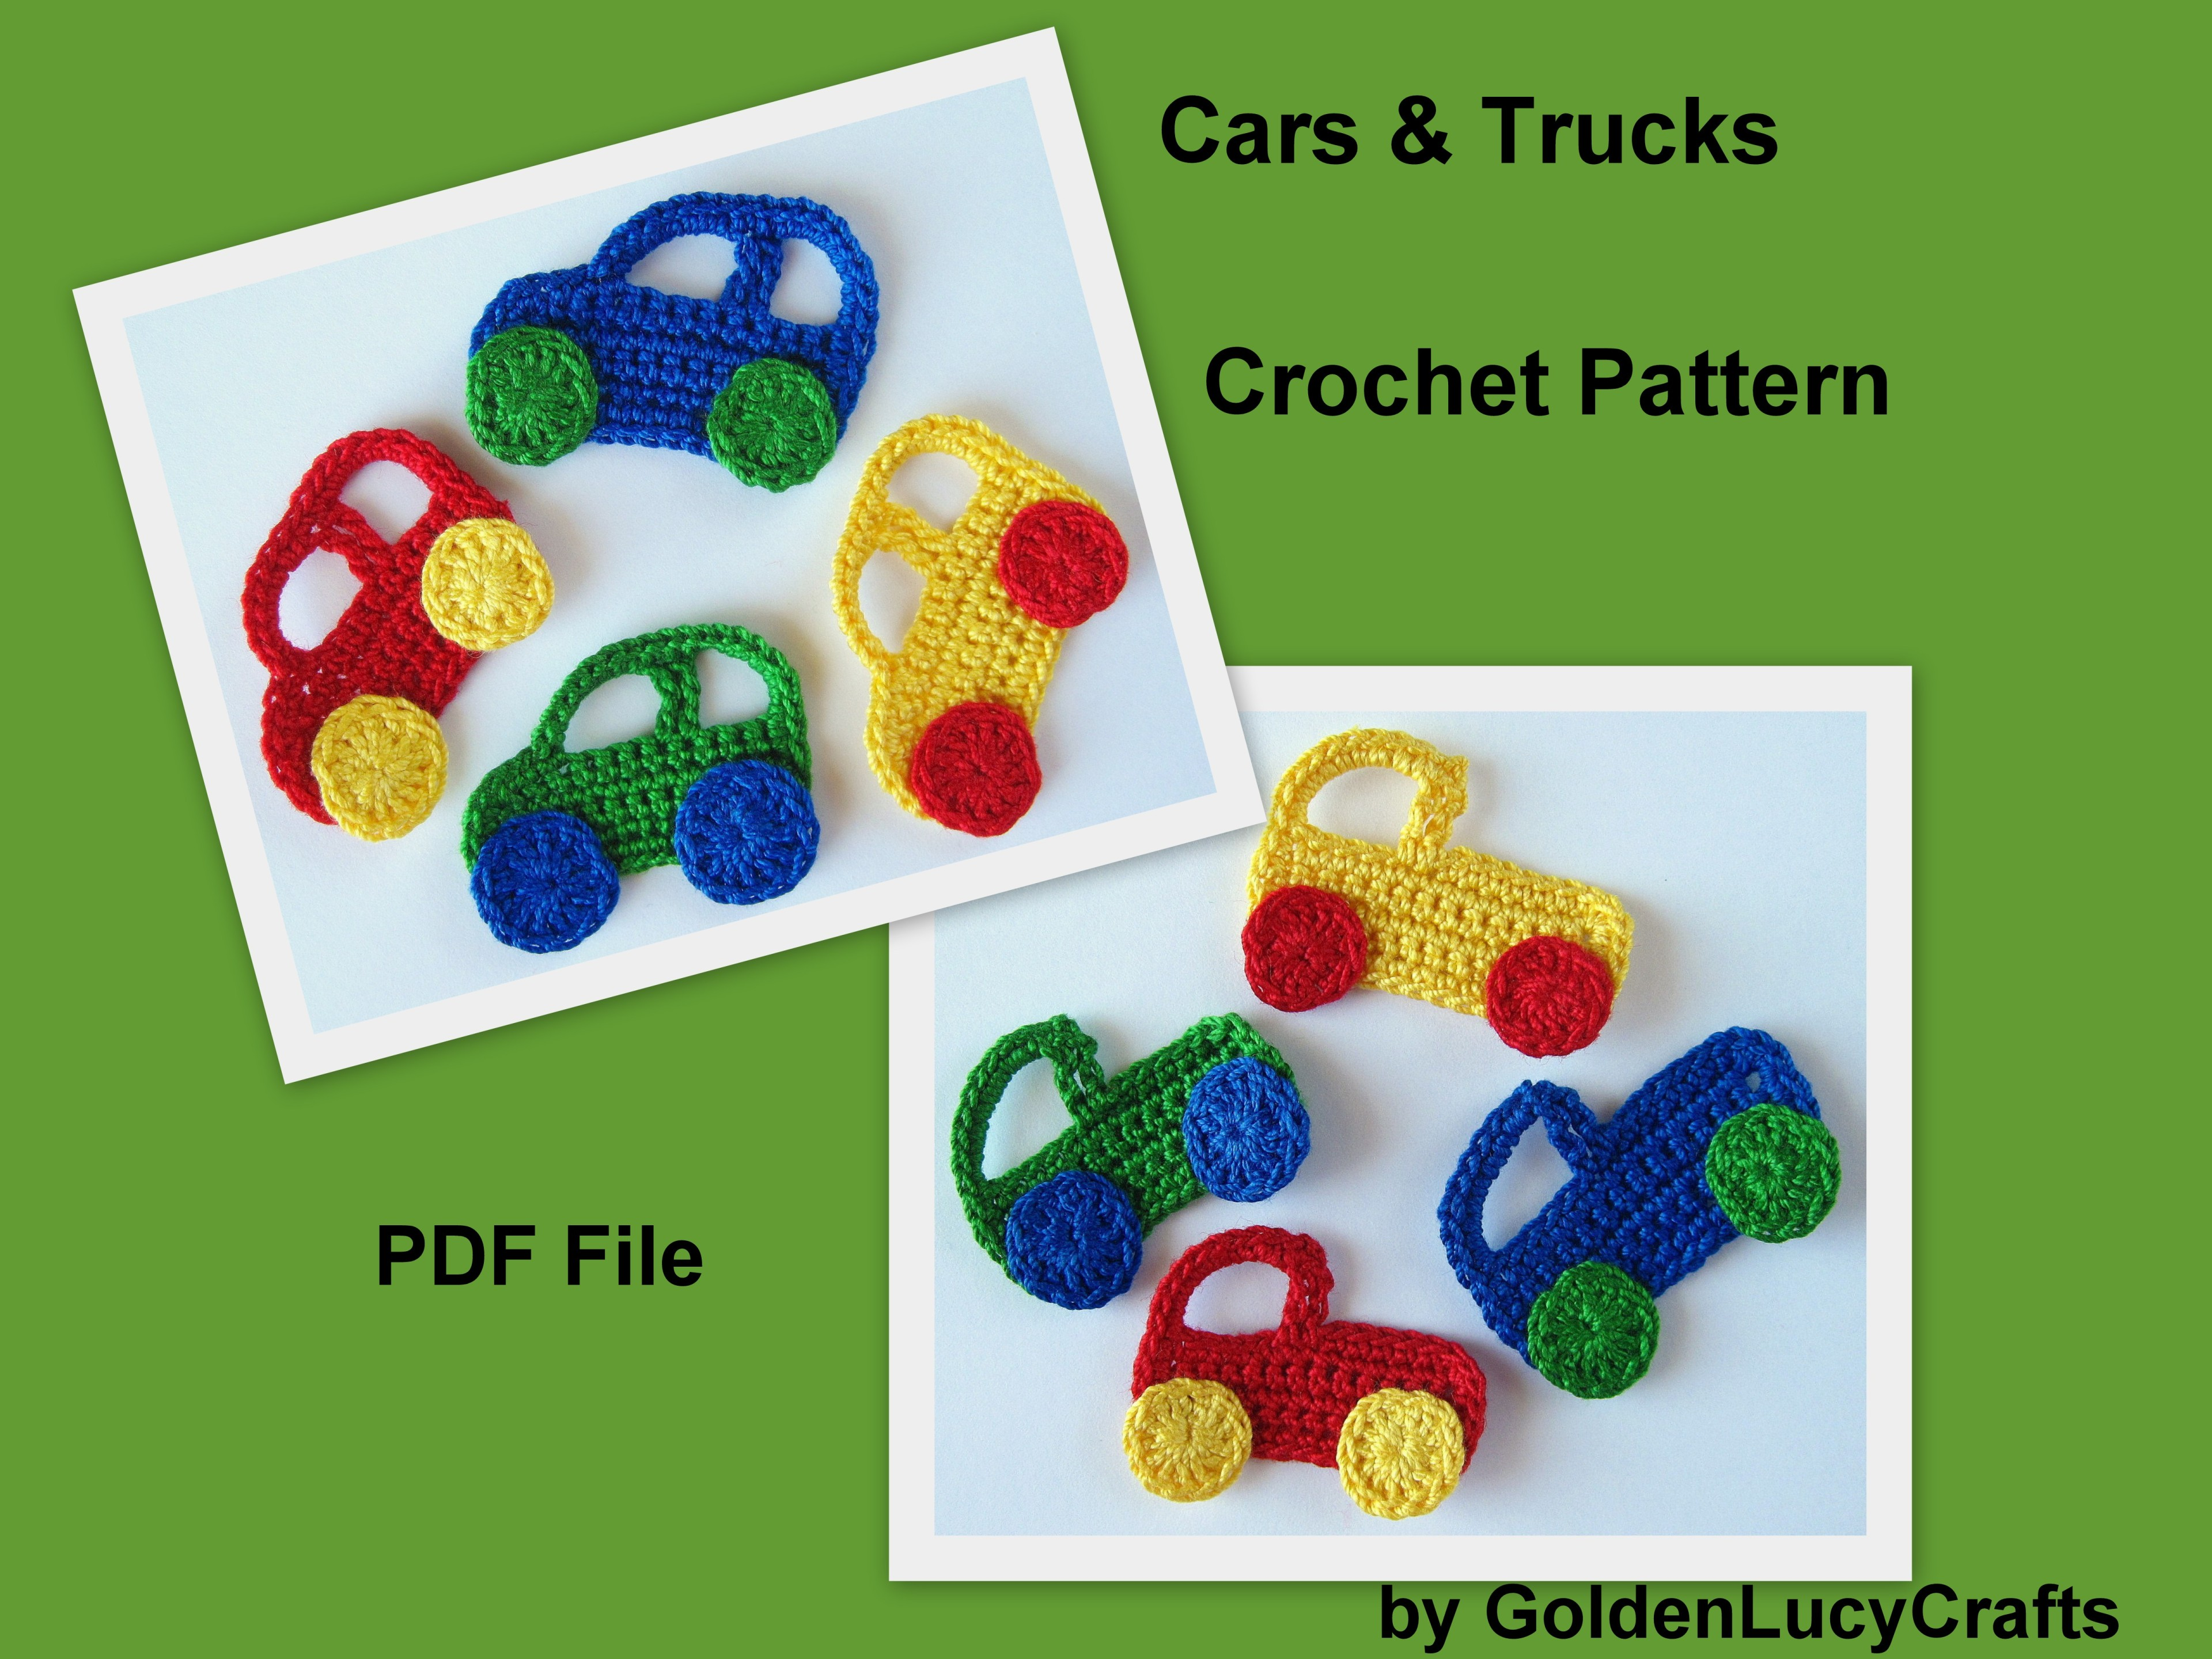 Crochet Pattern Car and Truck Applique